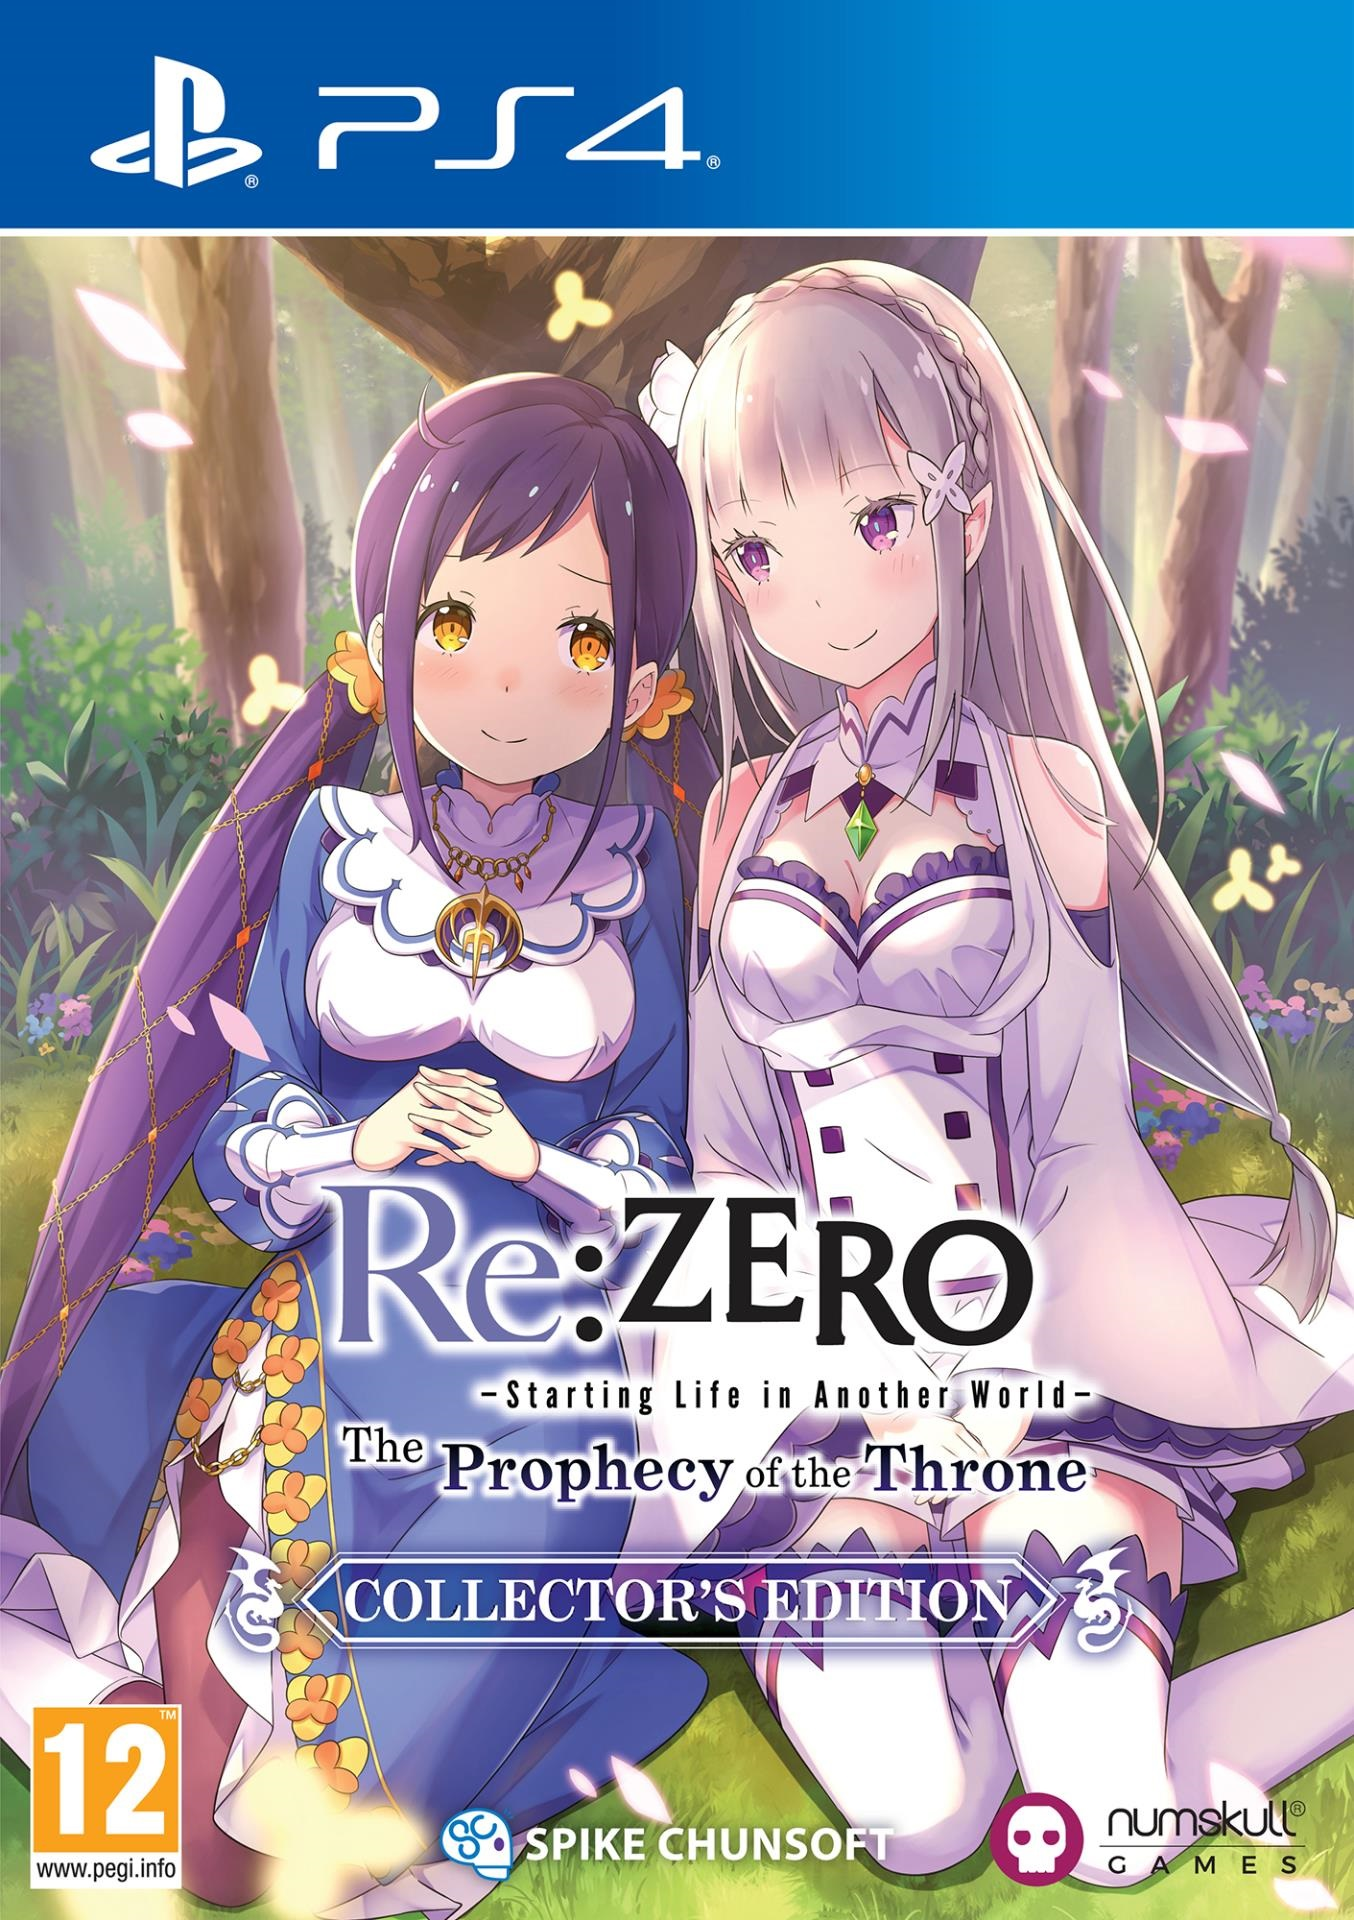 Re:ZERO Starting Life in Another World: The Prophecy of the Throne Collector's Edition